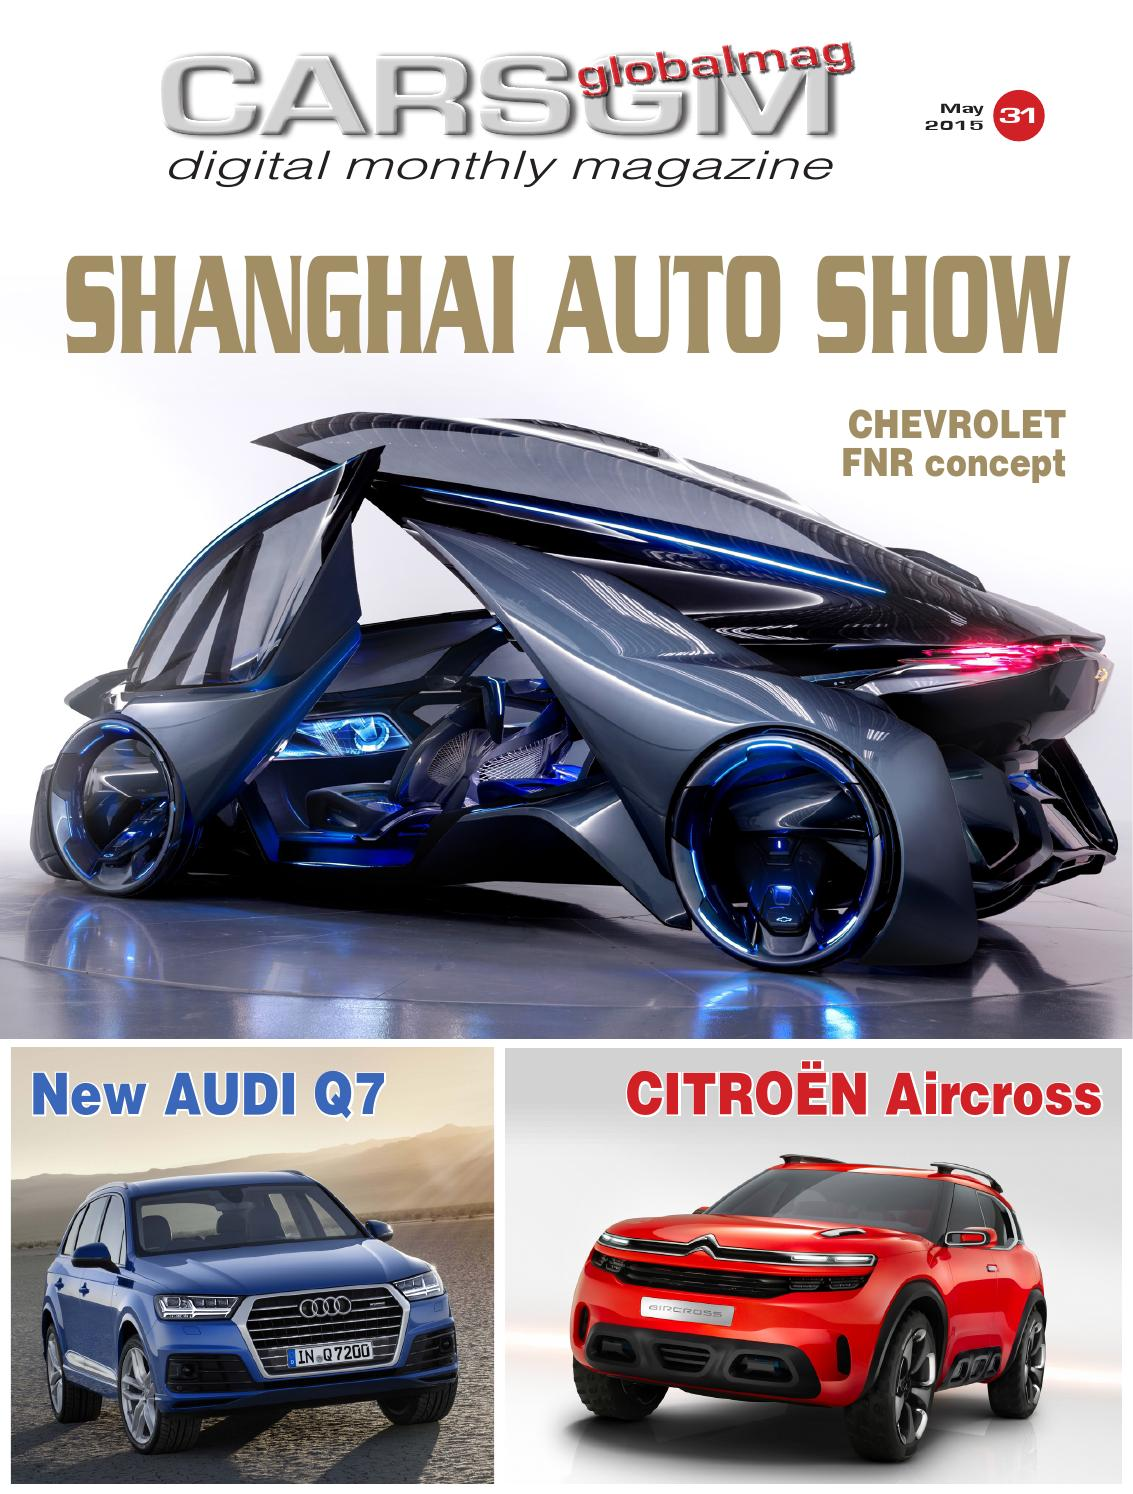 Cars Global Magazine - May 2015 free download